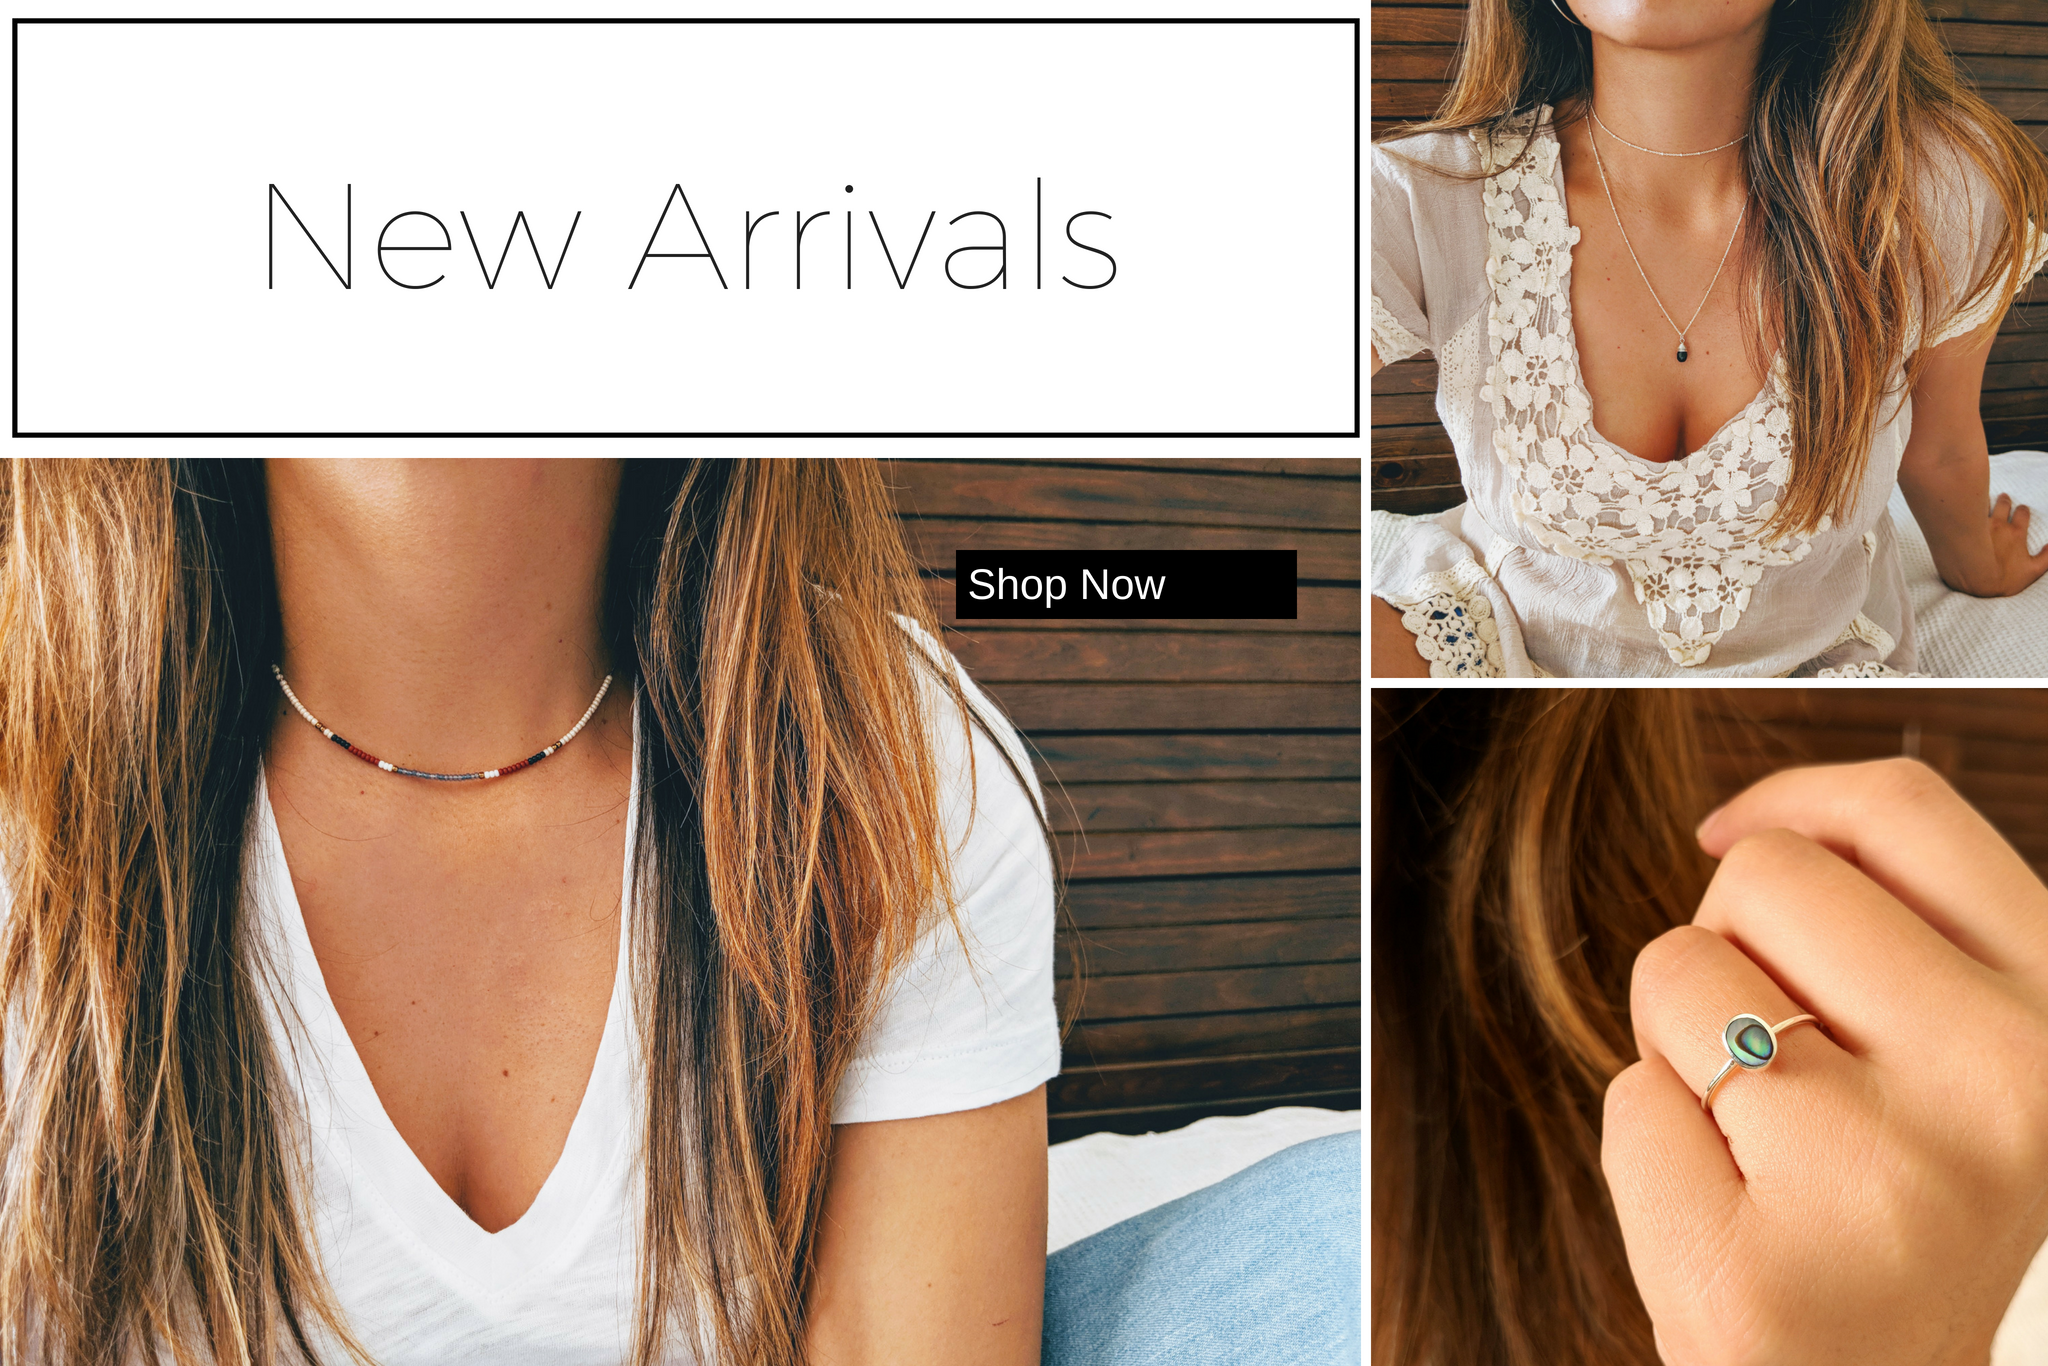 Moon & Milk - Homepage New Arrivals of necklaces, earrings, and rings